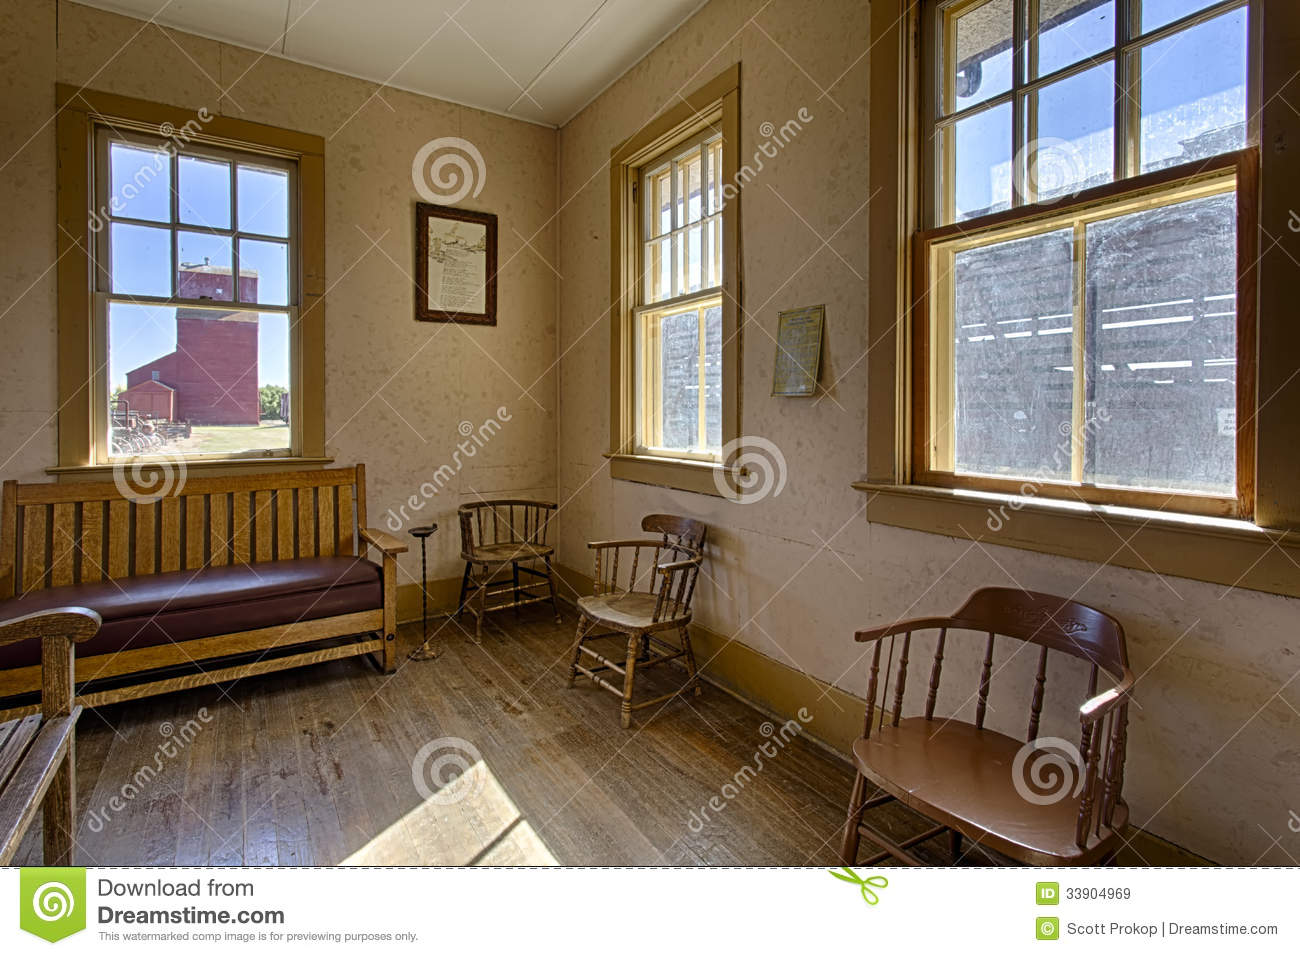 old train station stock image image of architecture 33904969. Black Bedroom Furniture Sets. Home Design Ideas